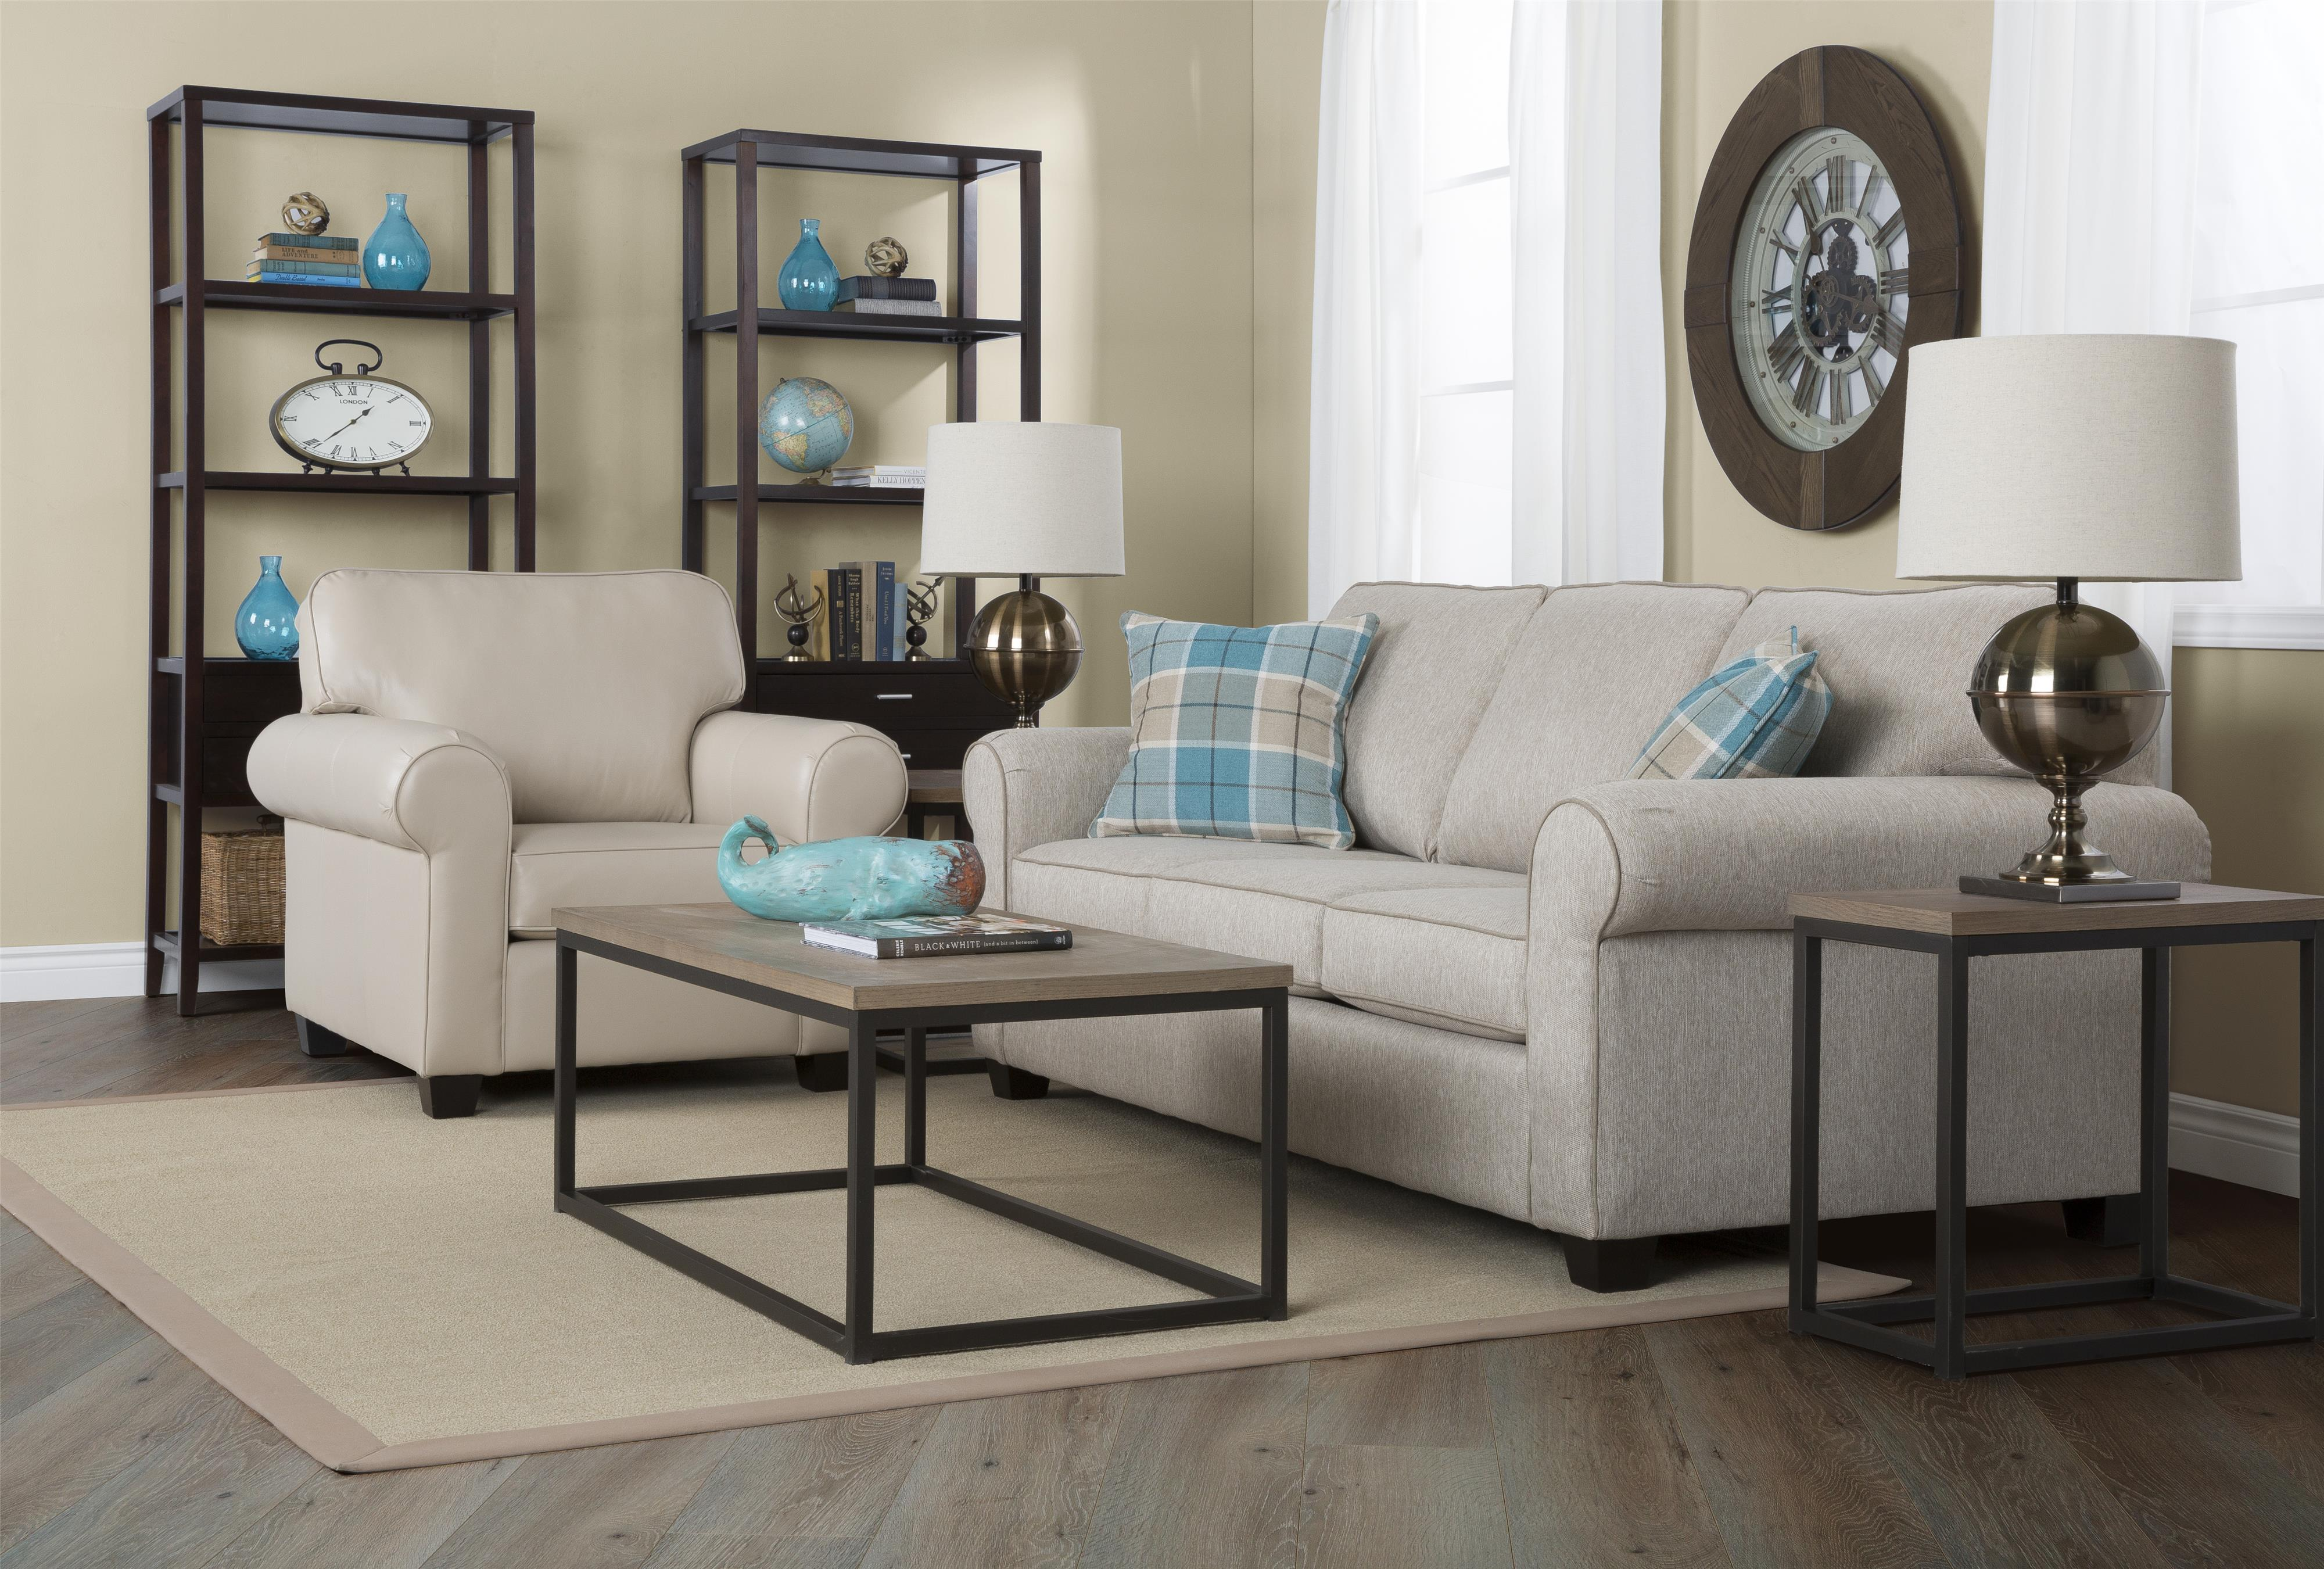 2179 Stationary Living Room Group by Decor-Rest at Upper Room Home Furnishings